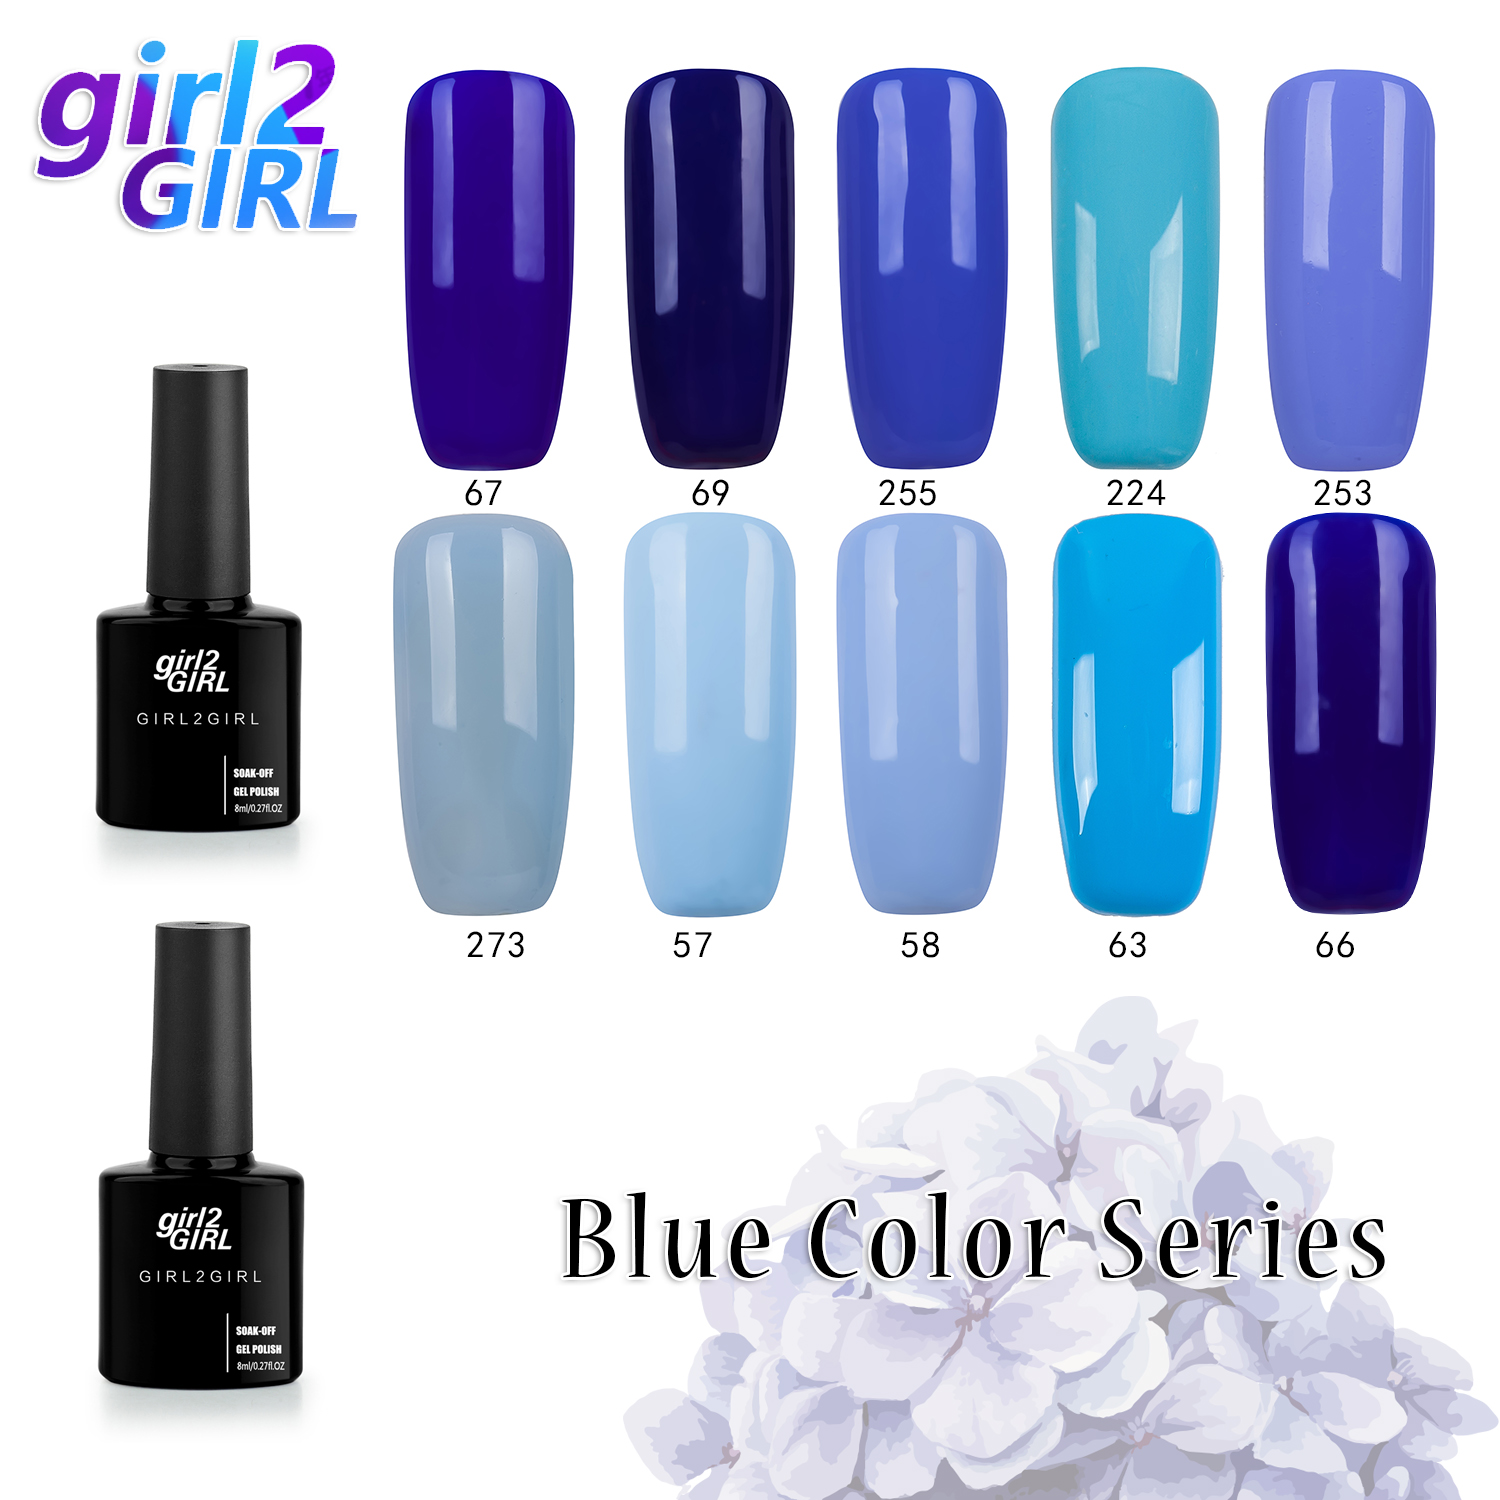 girl2GIRL 8 ML Soak Off UV Gel Nail Gel Polish Cosmetics Nail Art Manicure Nails Gel Polish Nail Varnish  BLUE set